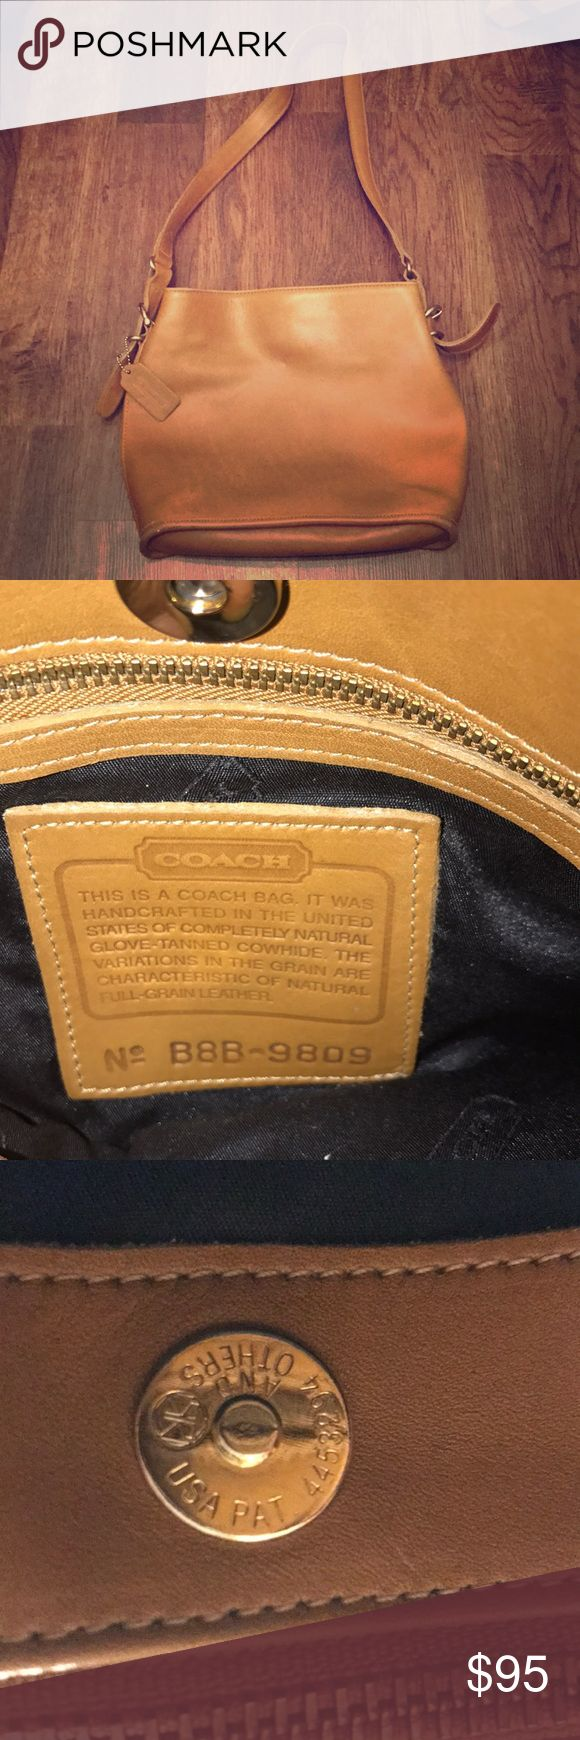 Vintage Coach Purse Vintage Made in the USA tan Cowhide Authentic Coach purse. Used condition. Clean inside. Zipper work perfectly. Bought at Coach Store. Coach Bags Shoulder Bags